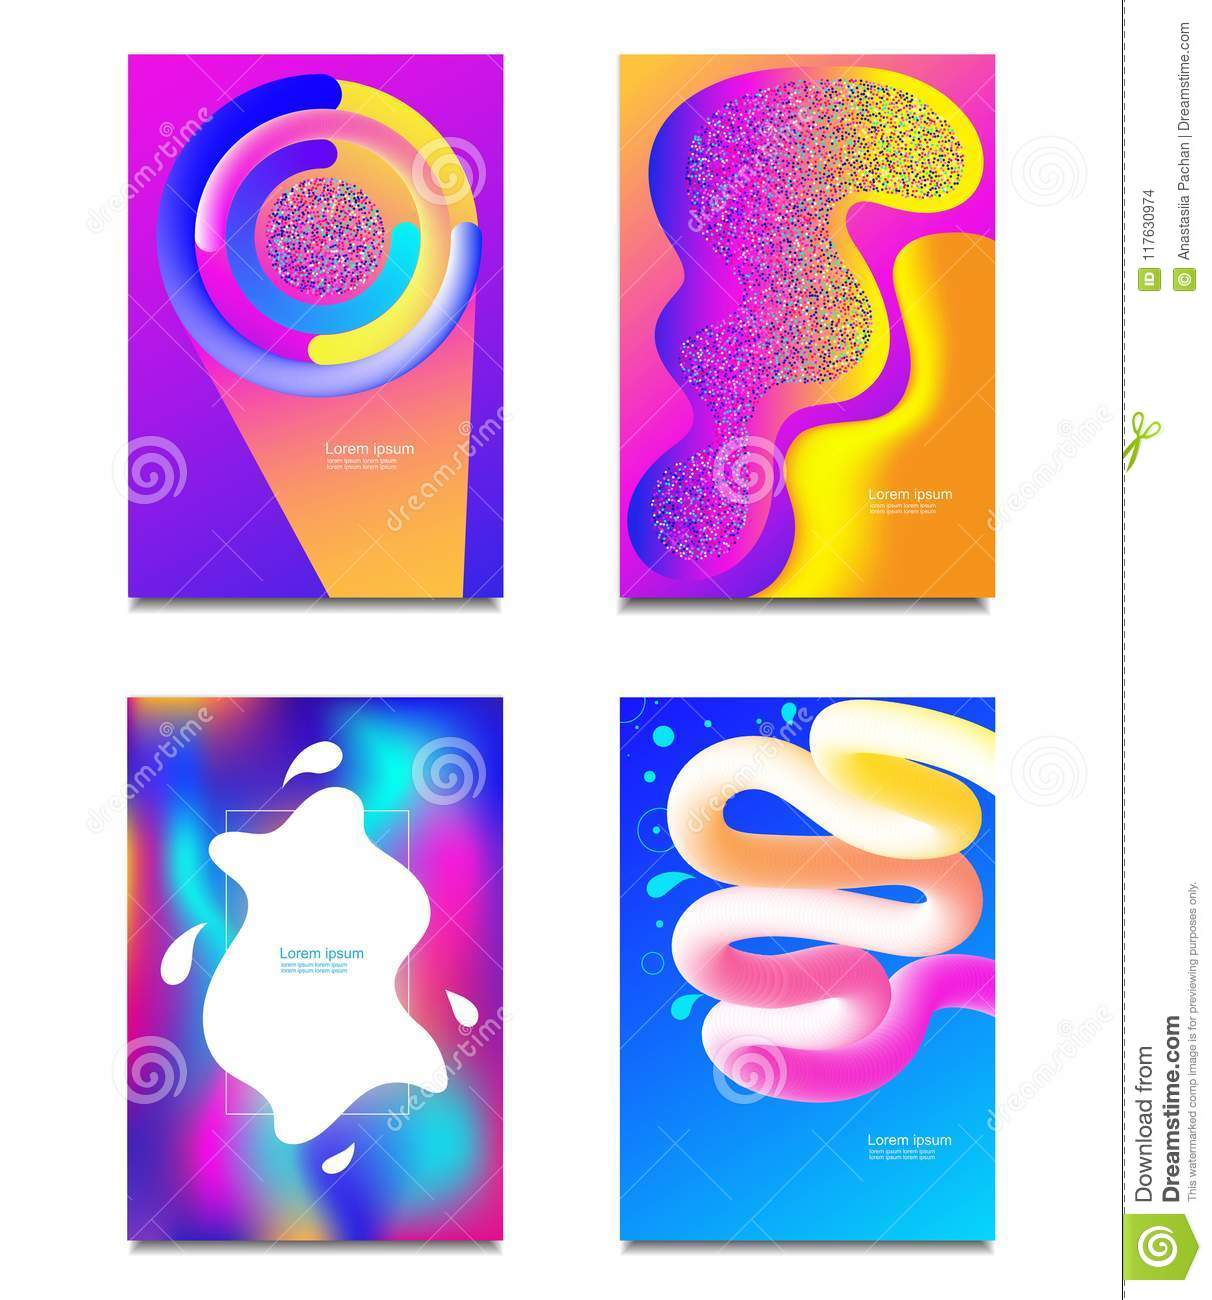 Geometric Covers Set Round Gradient Shapes Composition